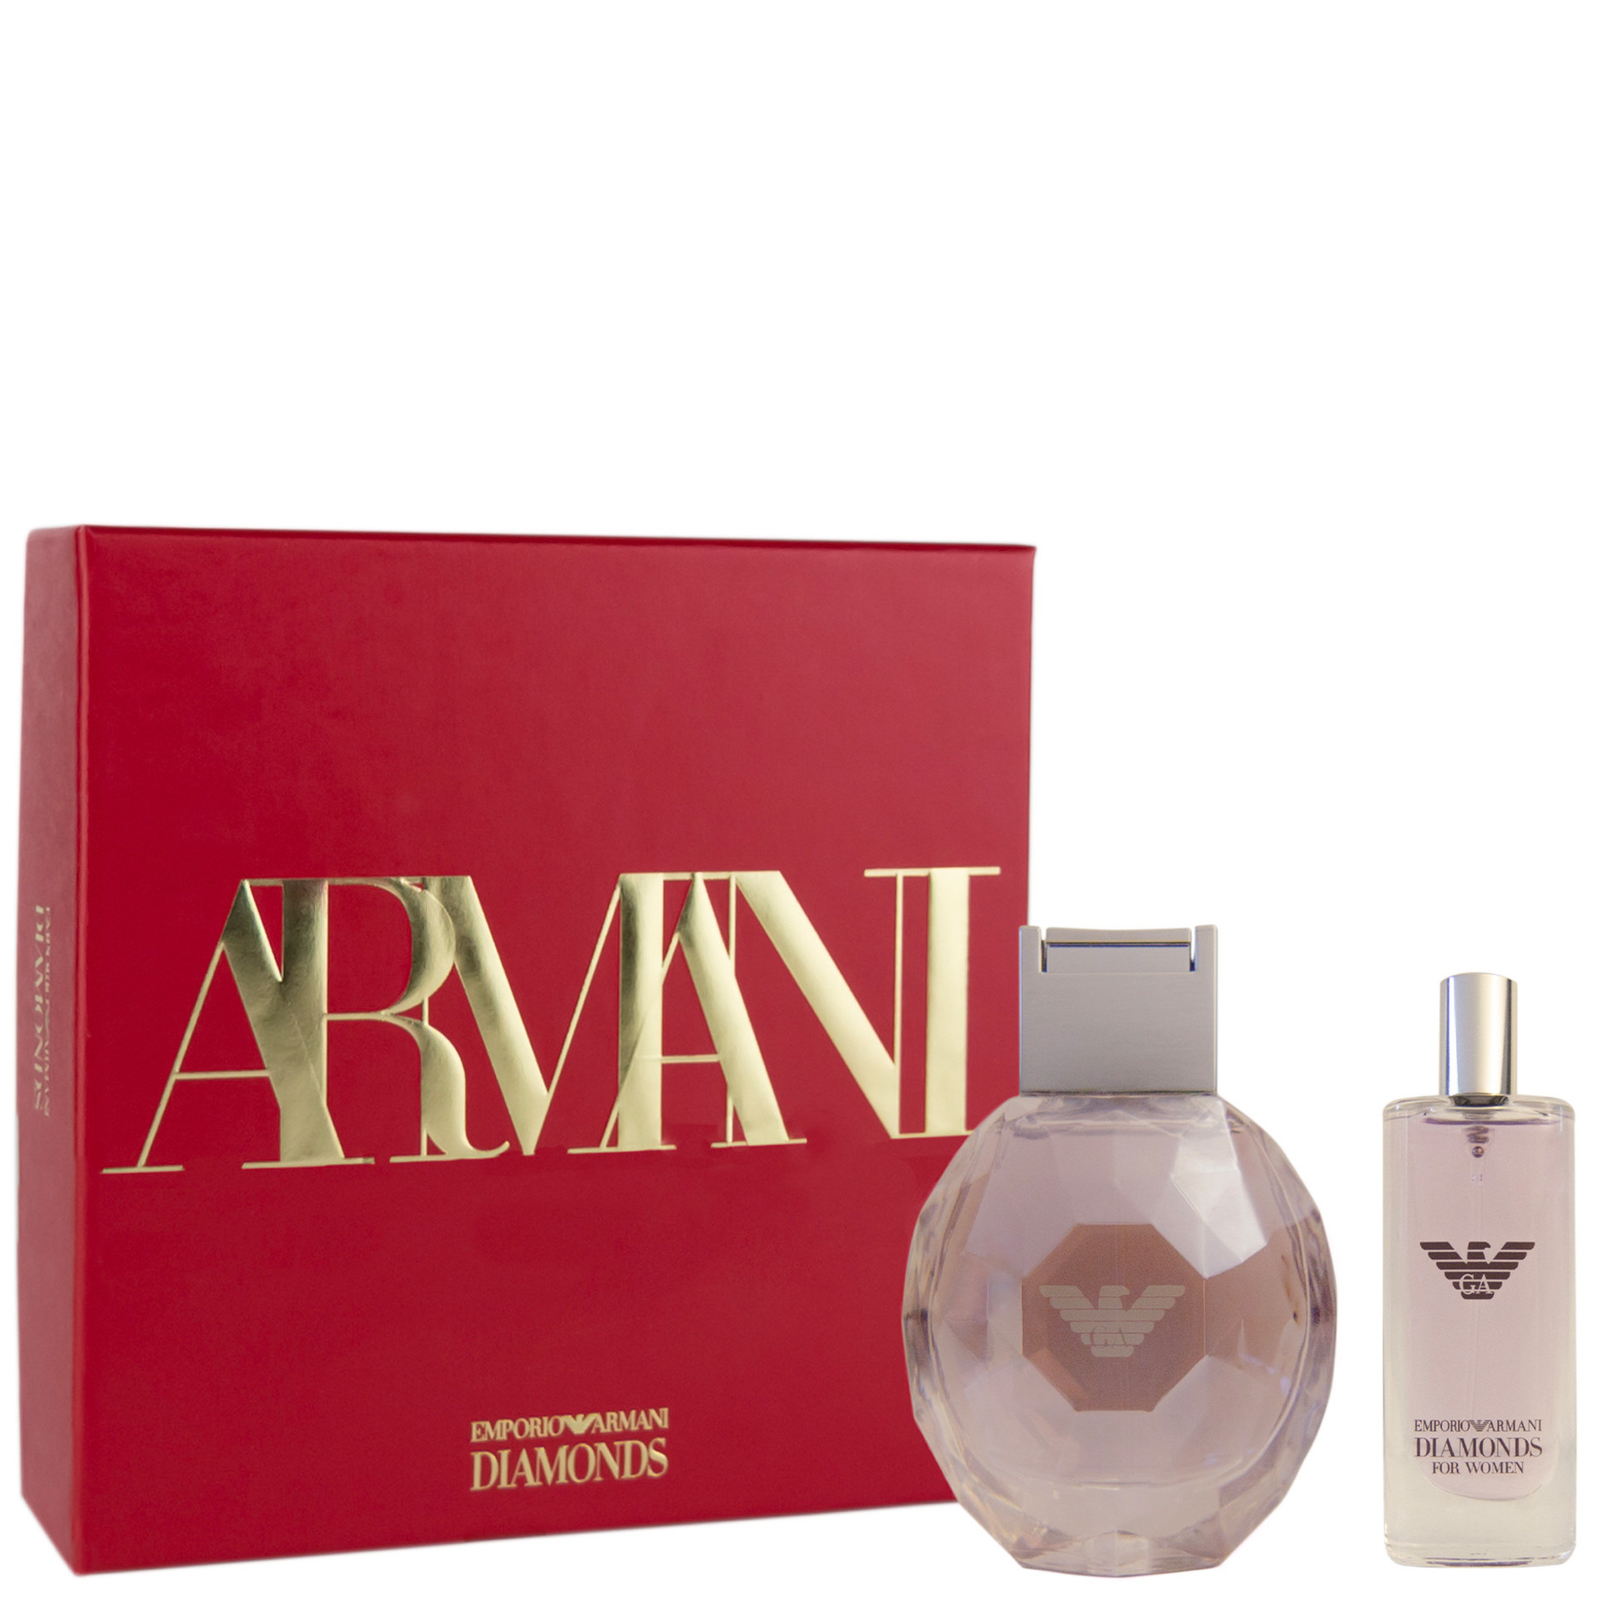 Armani Diamonds Violet Eau de Parfum Spray 50ml Gift Set